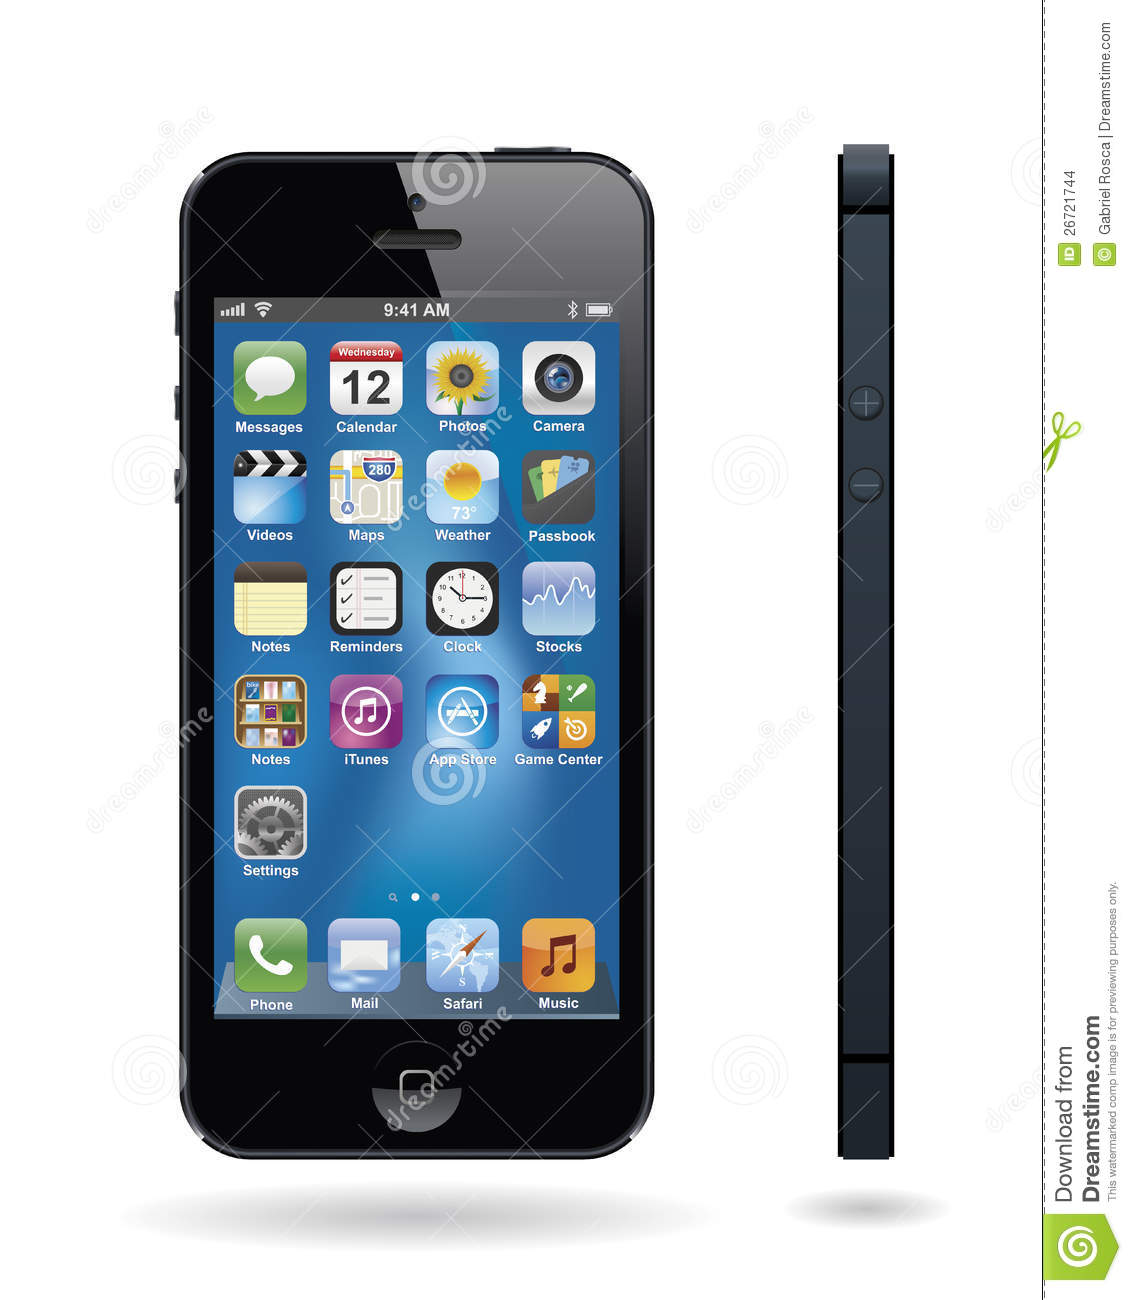 New Iphone 5 Editorial Stock Image - Image: 26721744